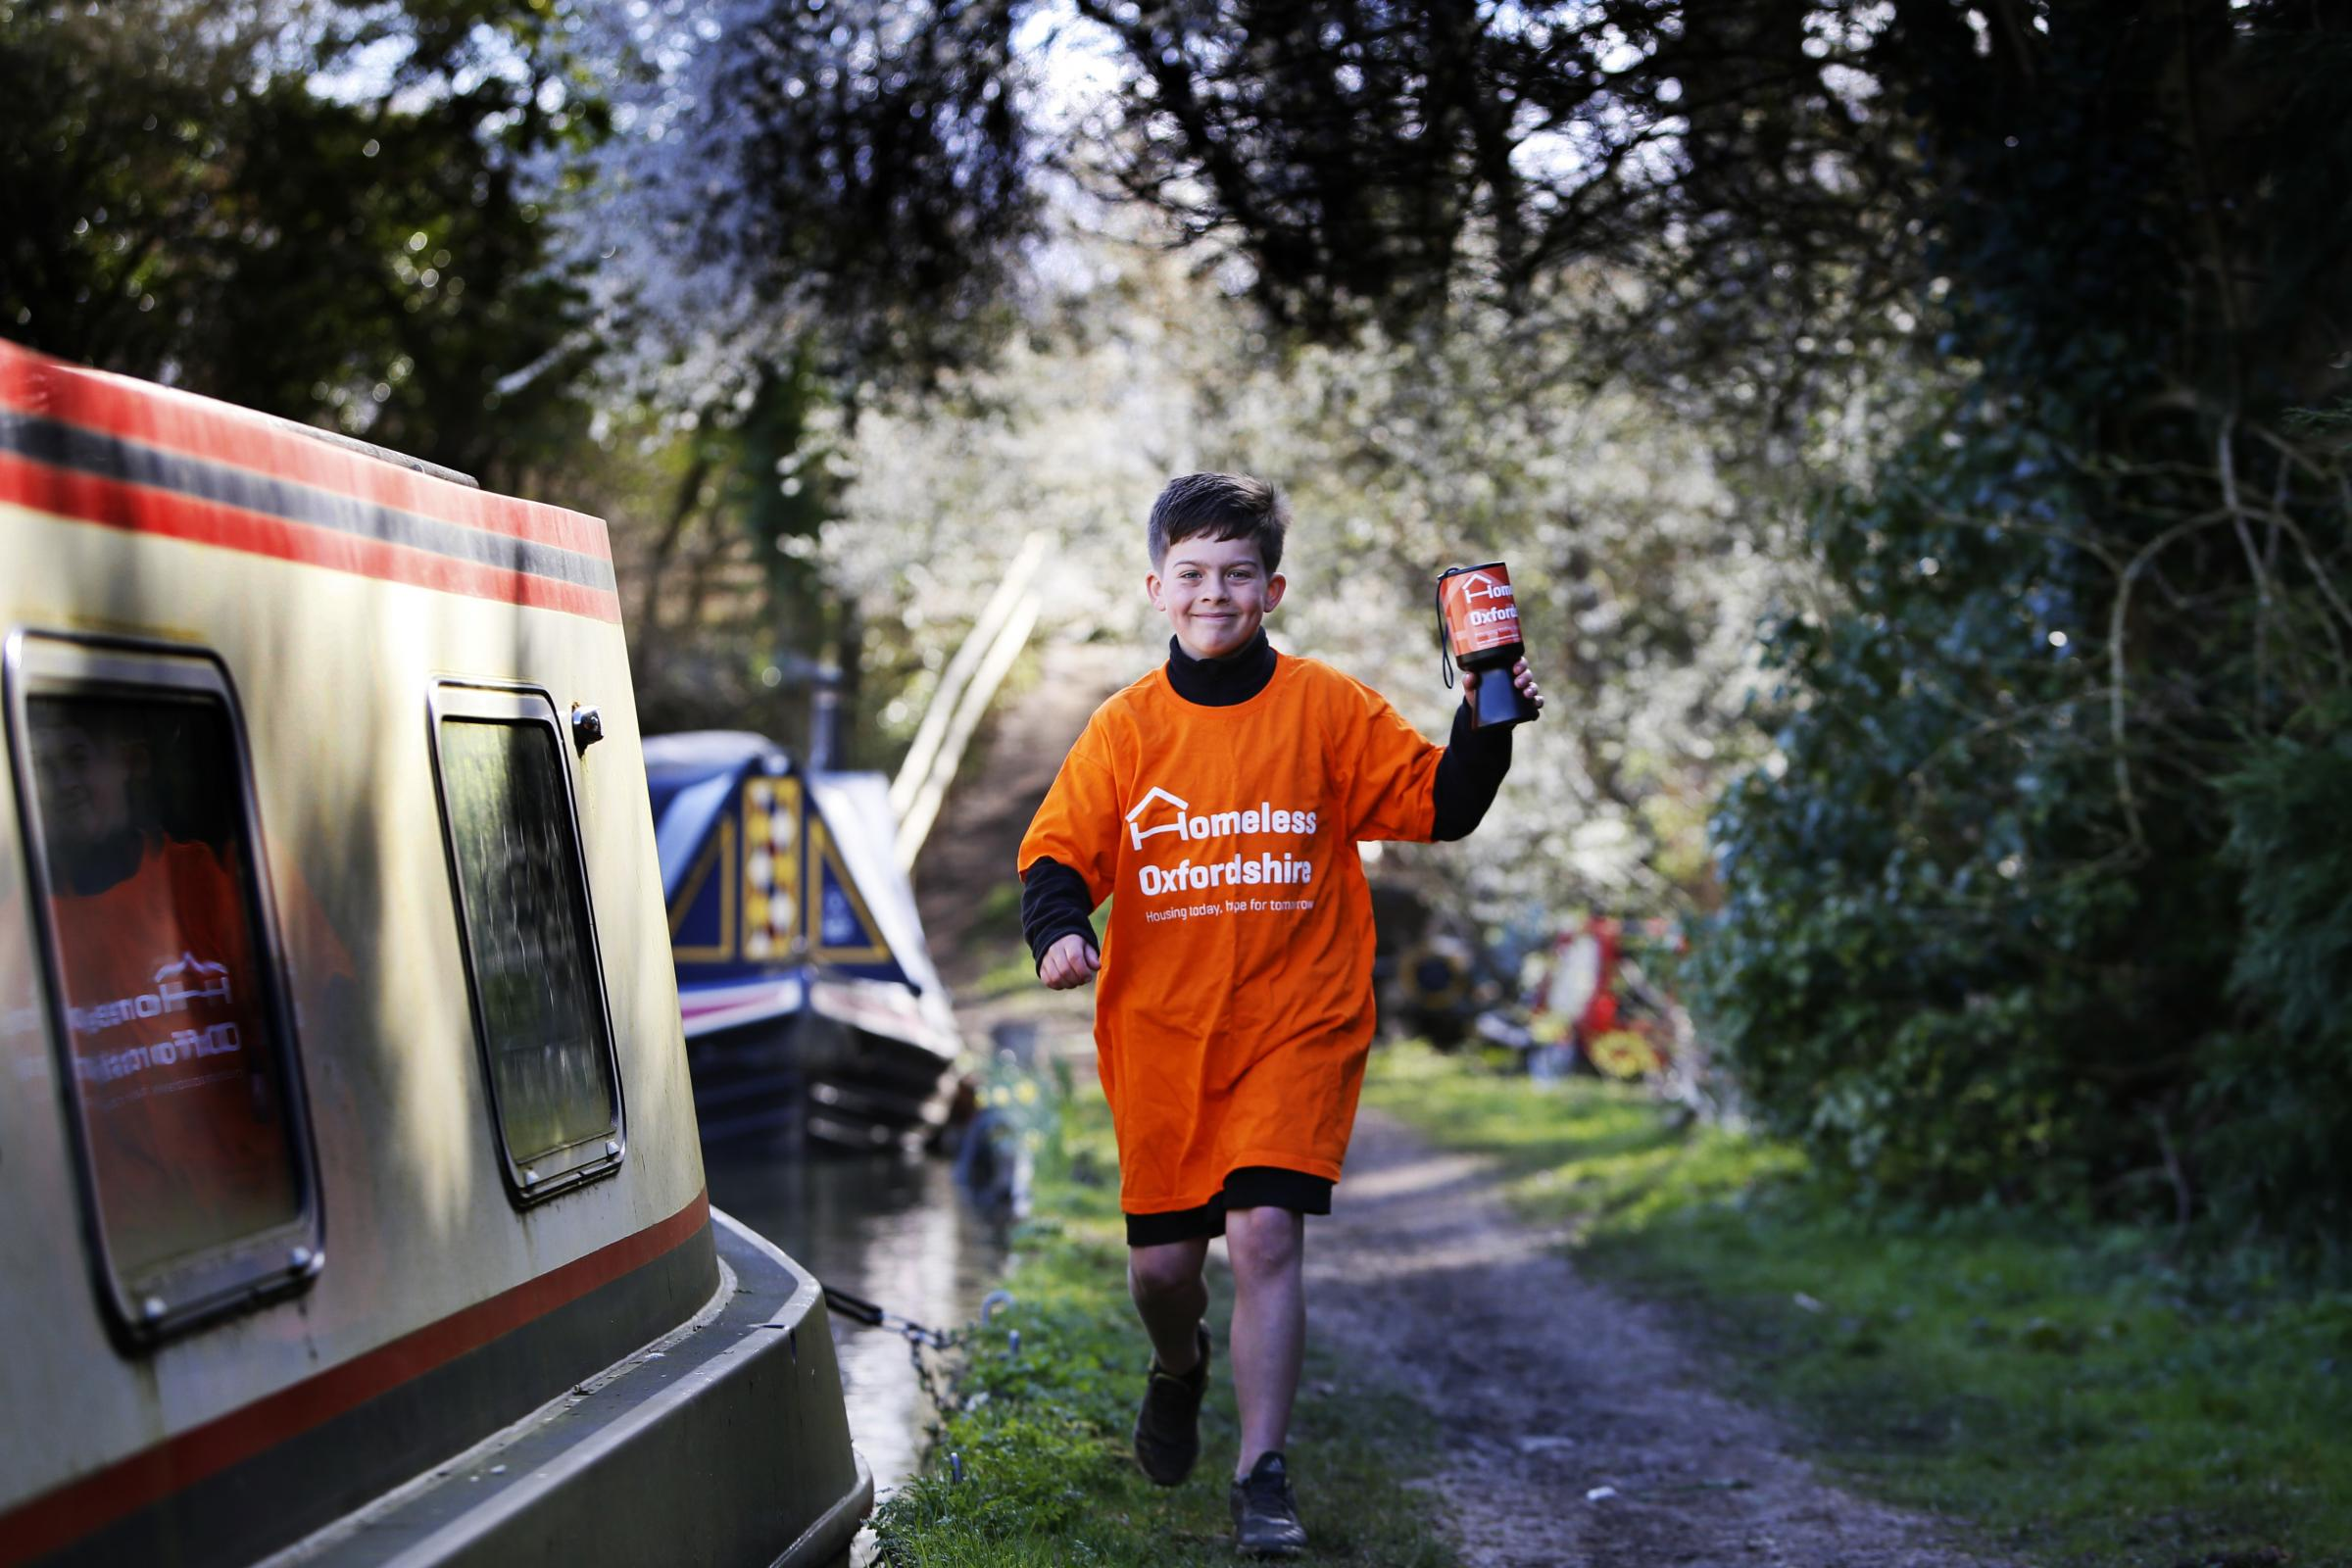 Bobby MacKenzie, eight, is walking seven miles along the Oxford Canal for Homeless Oxfordshire. He wants to raise lots of money to help the homeless. Picture: Ed Nix